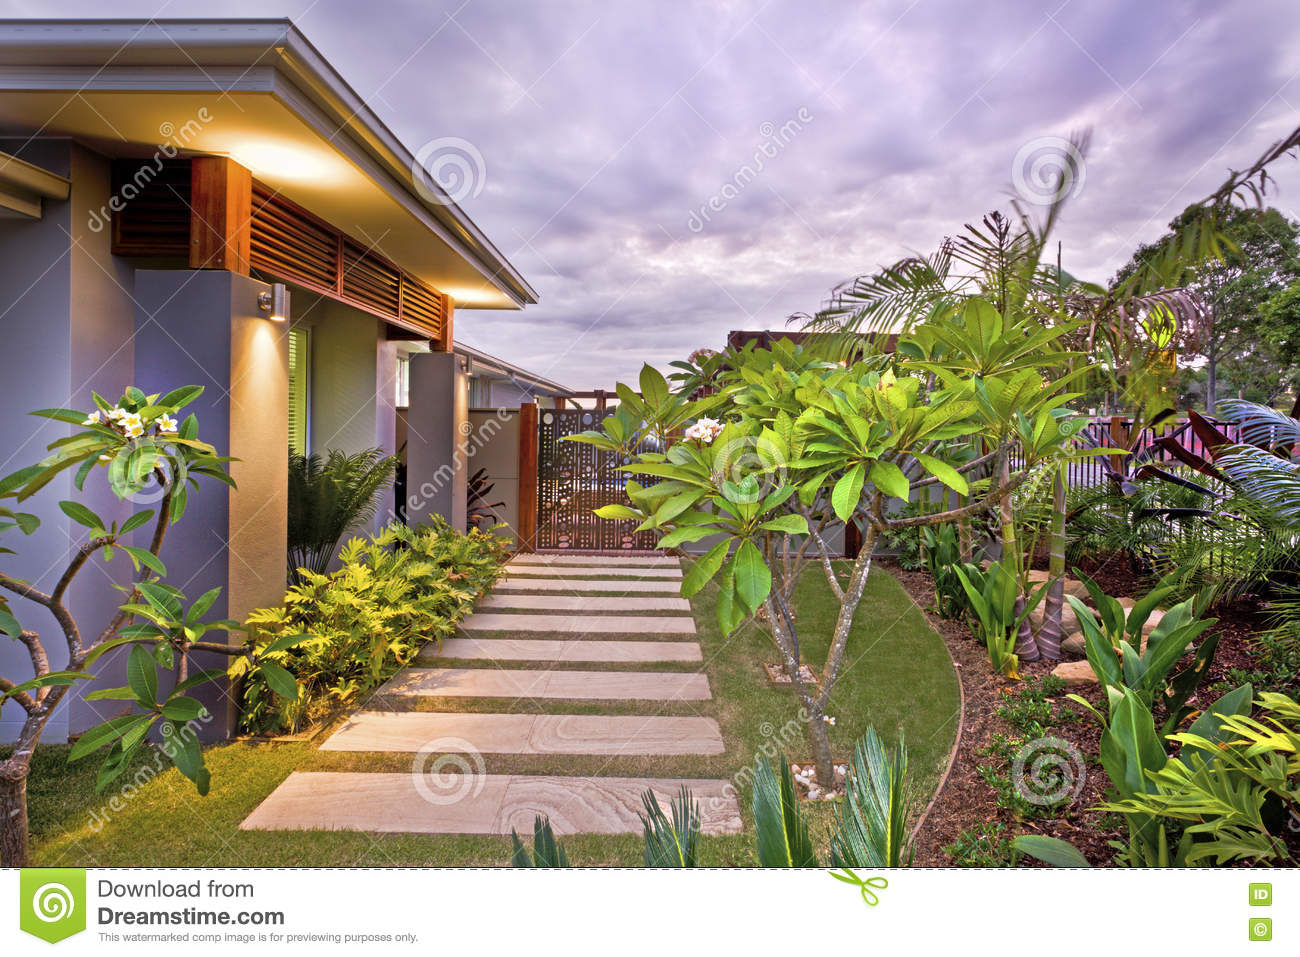 Modern house garden with colorful illumination under the sky